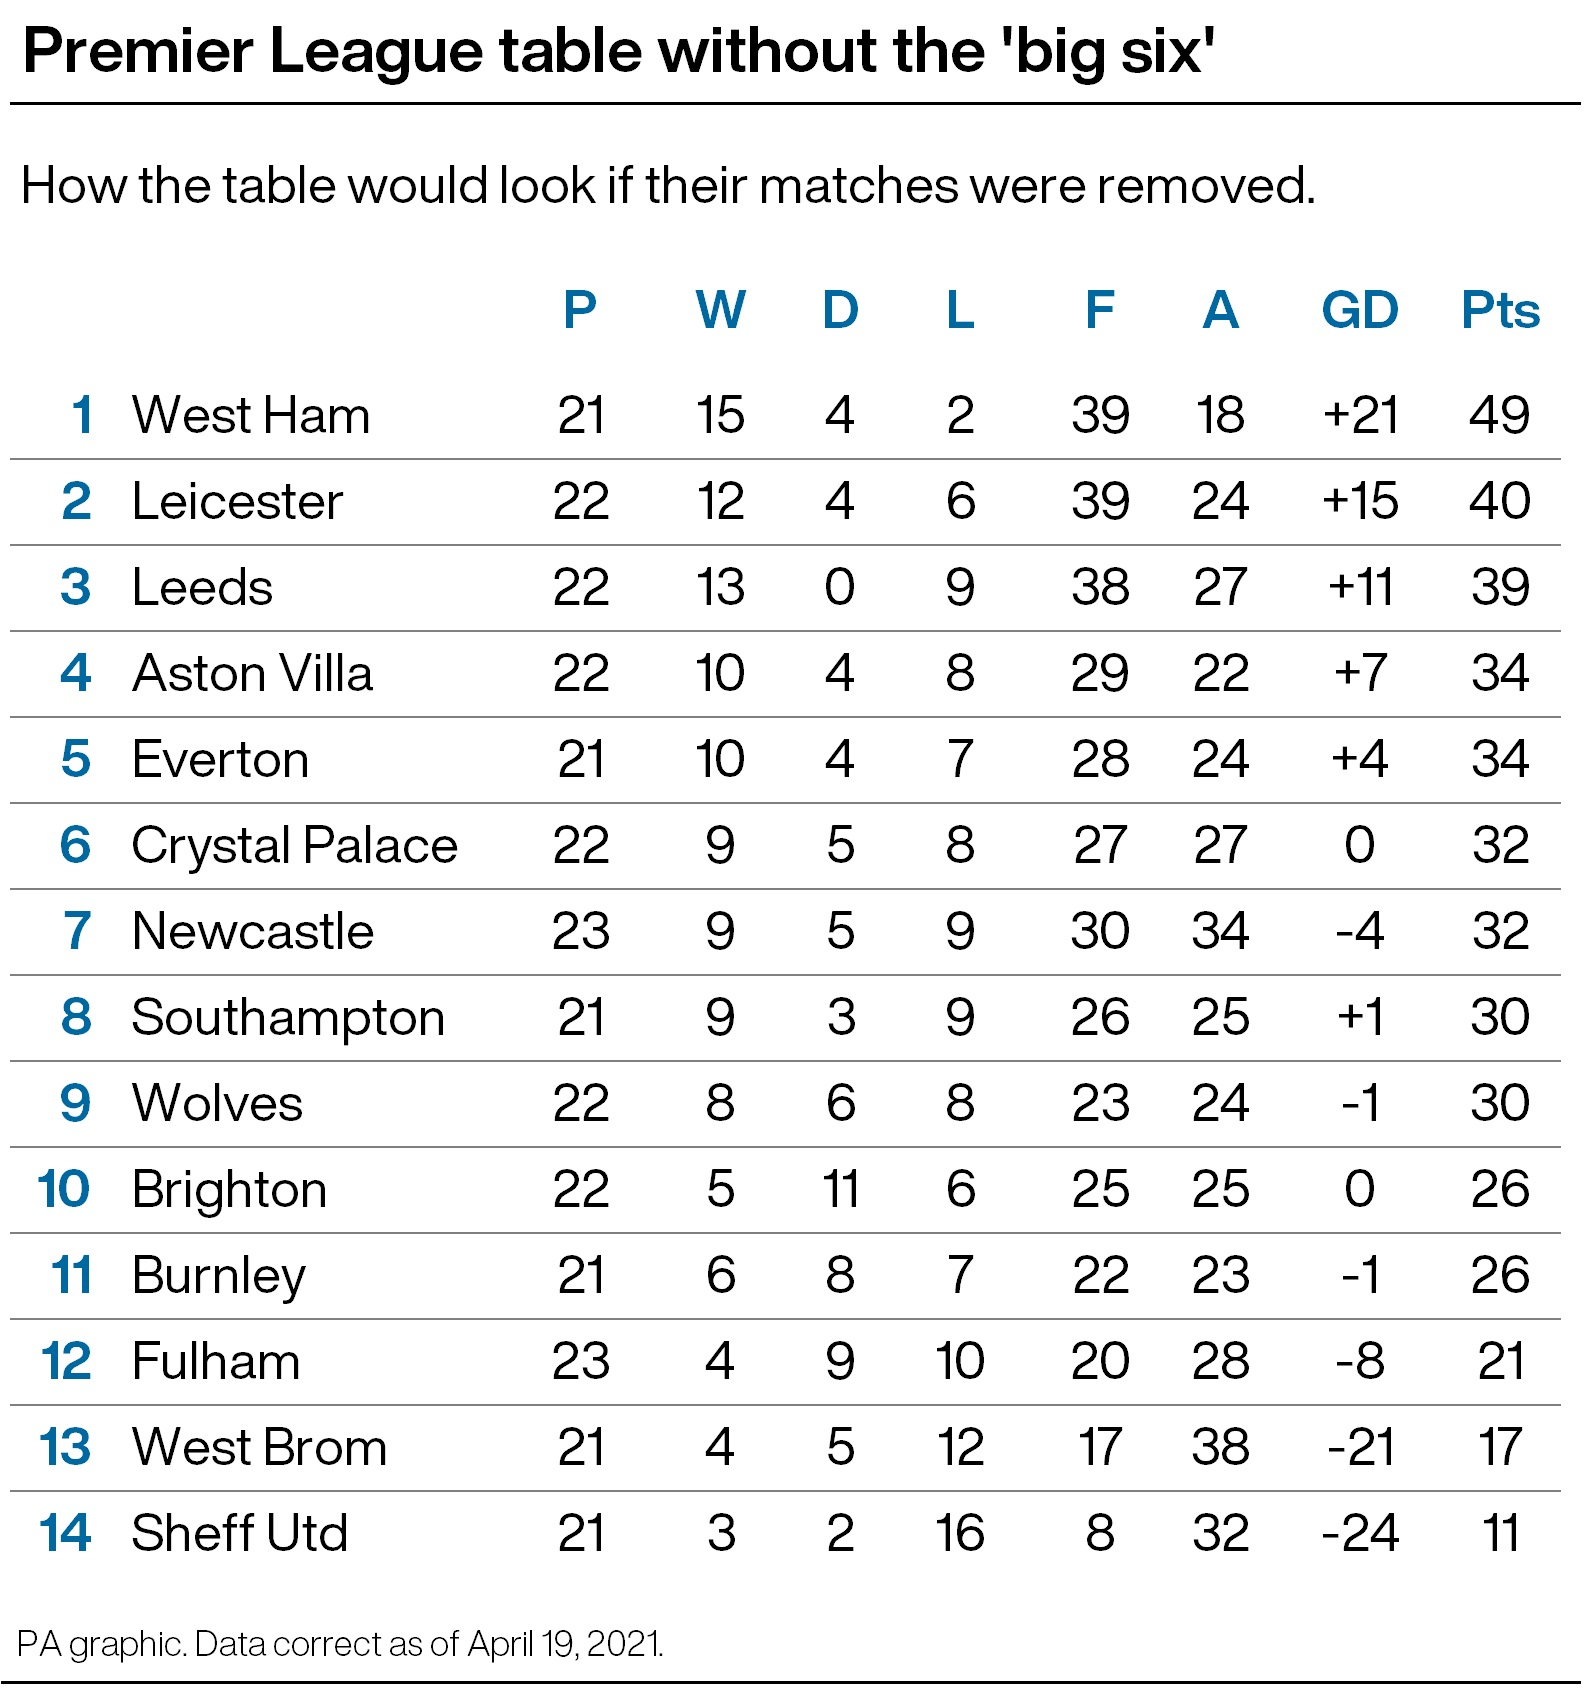 Premier League table without the results of Super League clubs